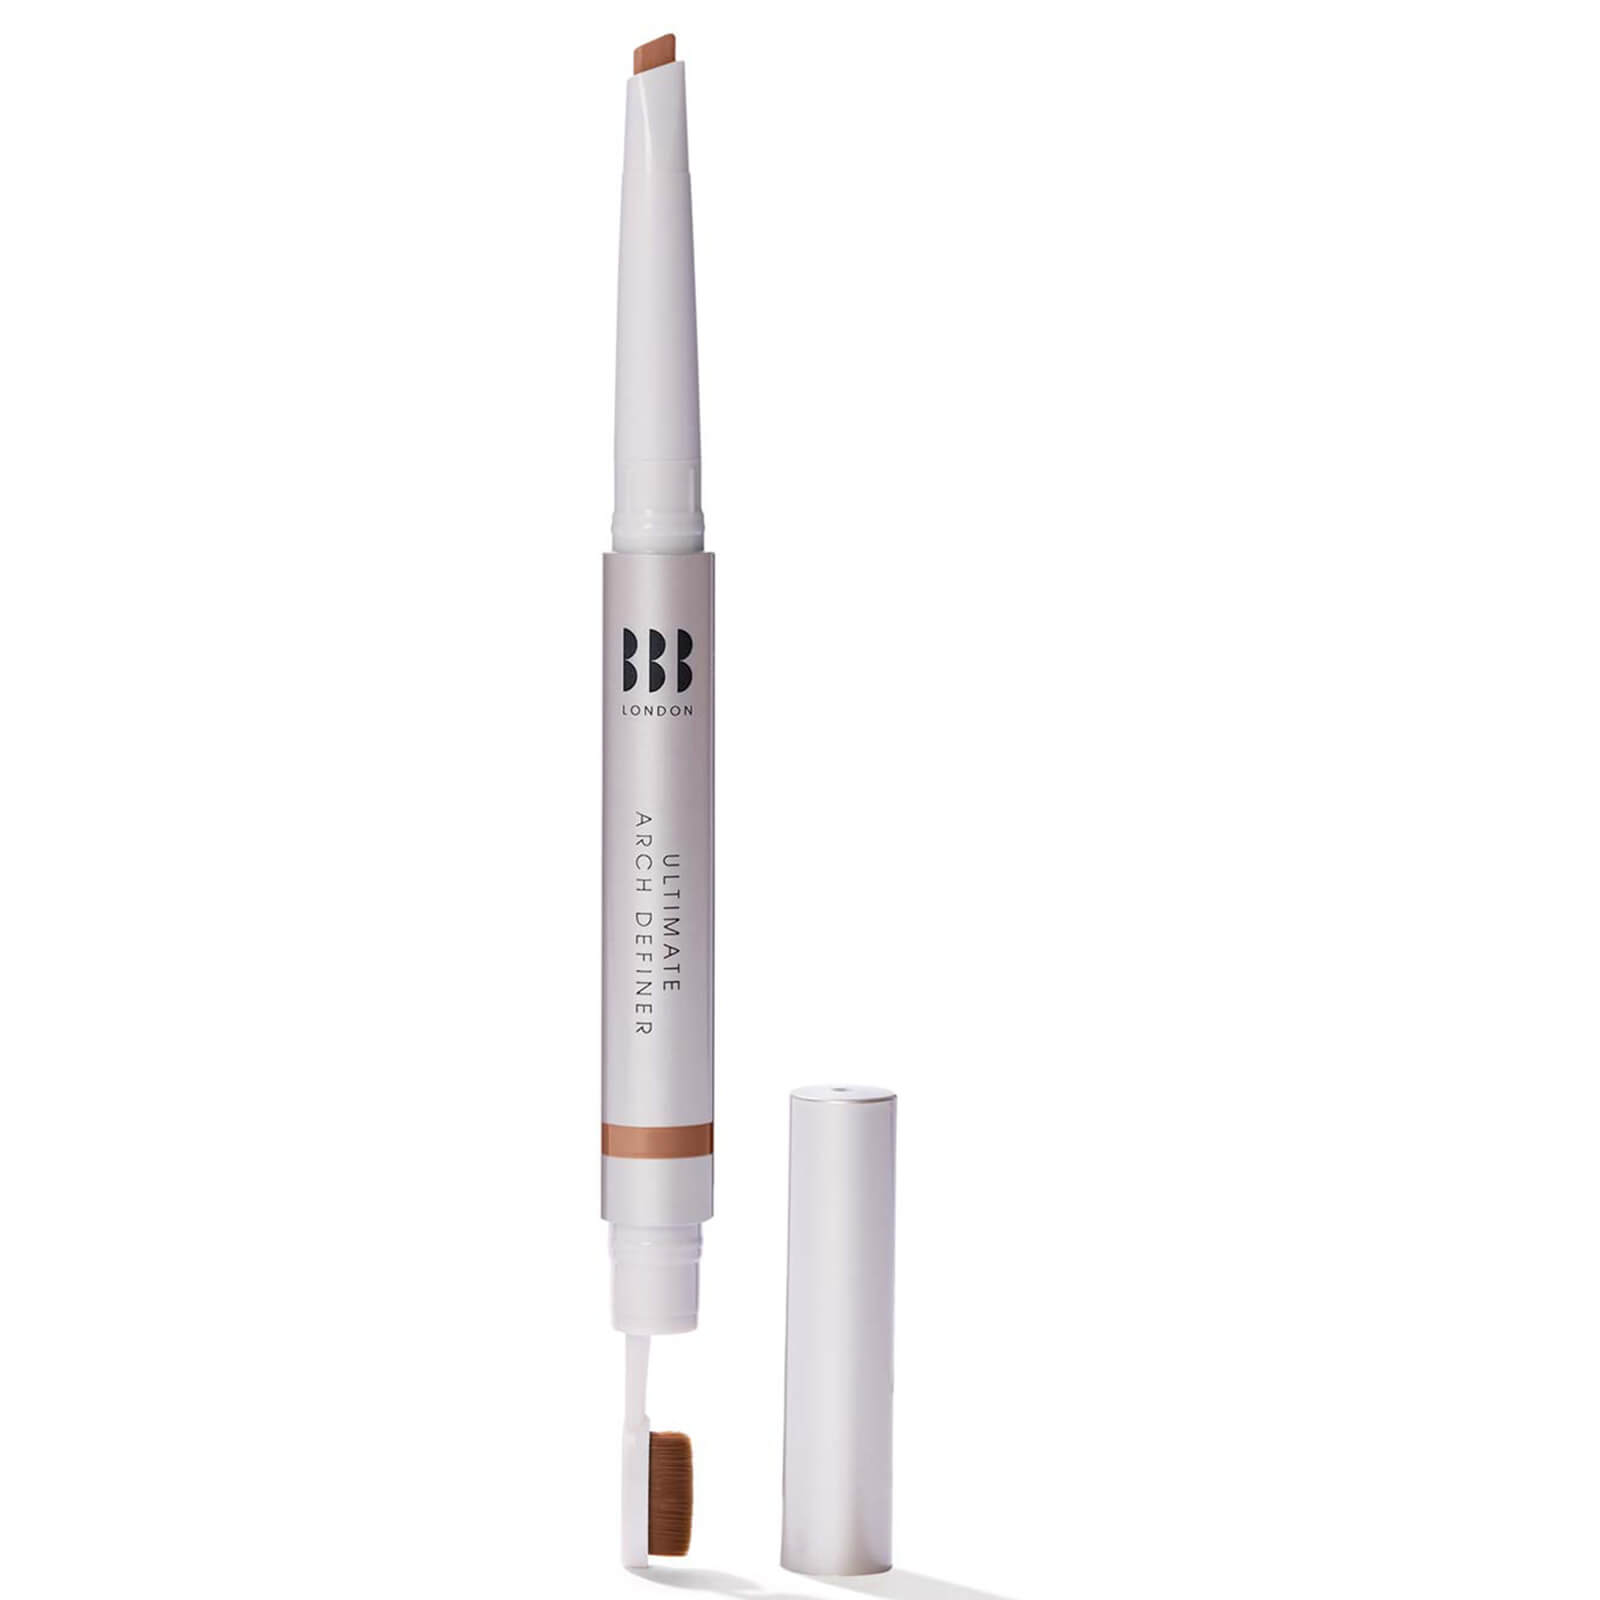 BBB London Ultimate Arch Definer 0.3g (Various Shades) - Cinnamon